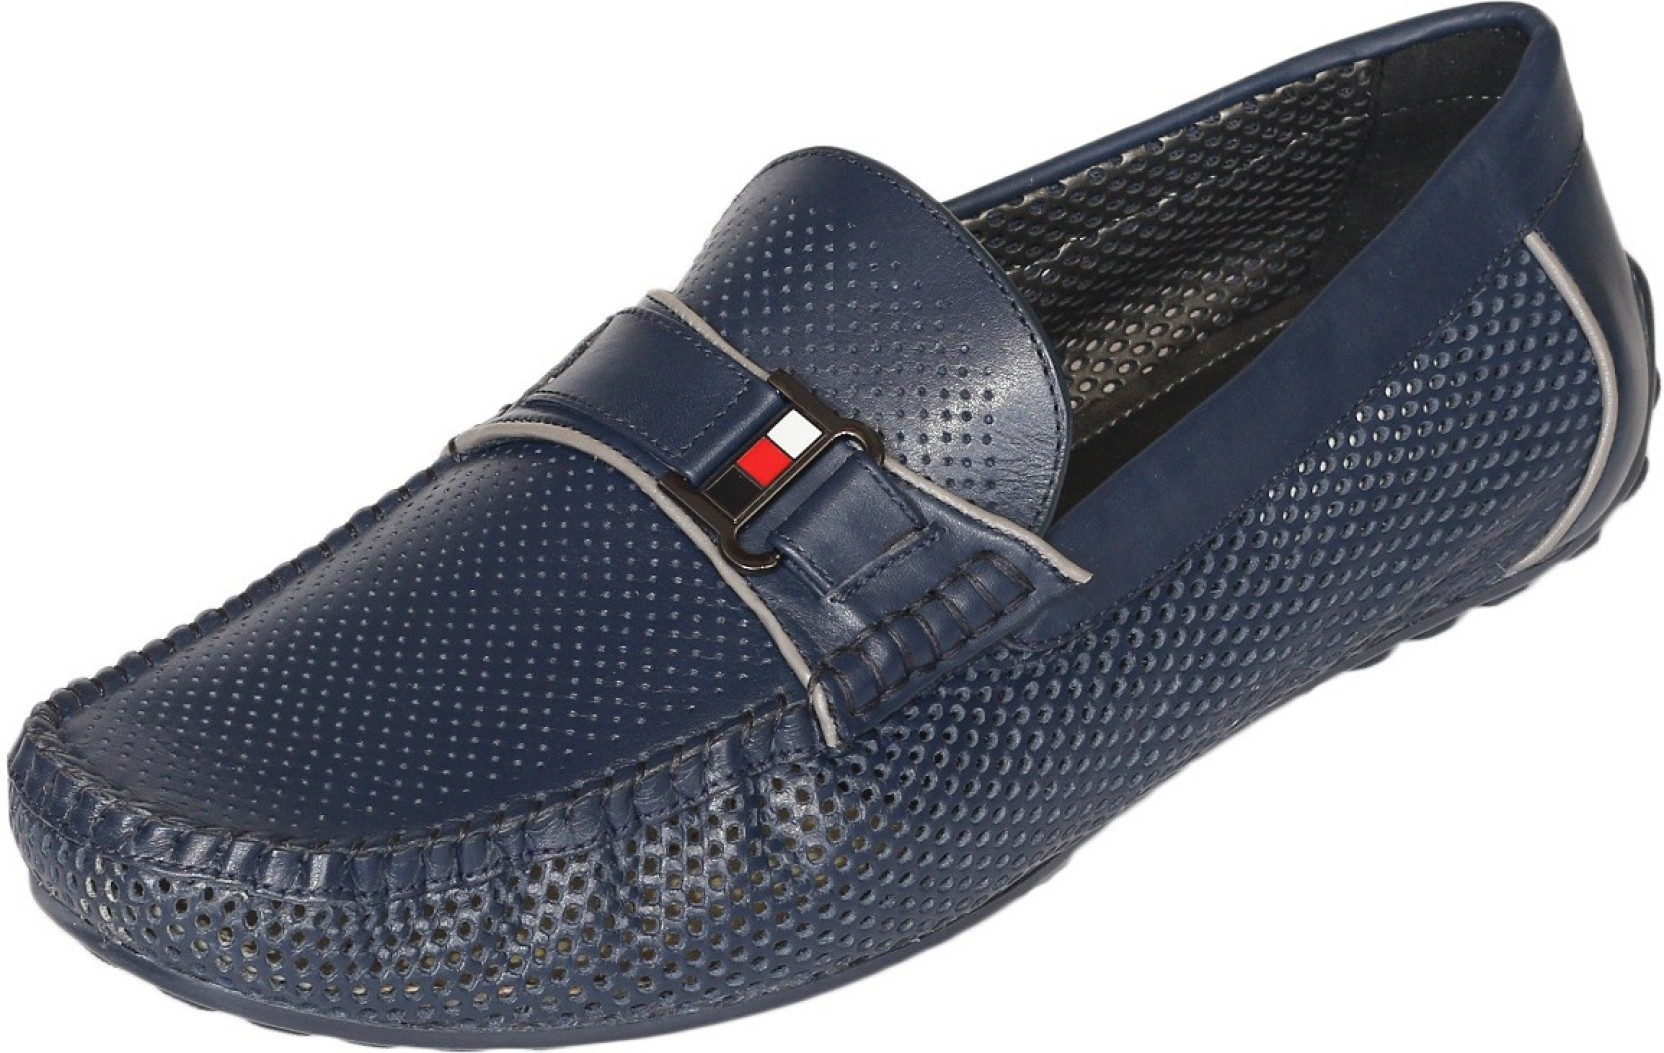 Rosso Brunello Loafers For Men. Share. Home · Footwear